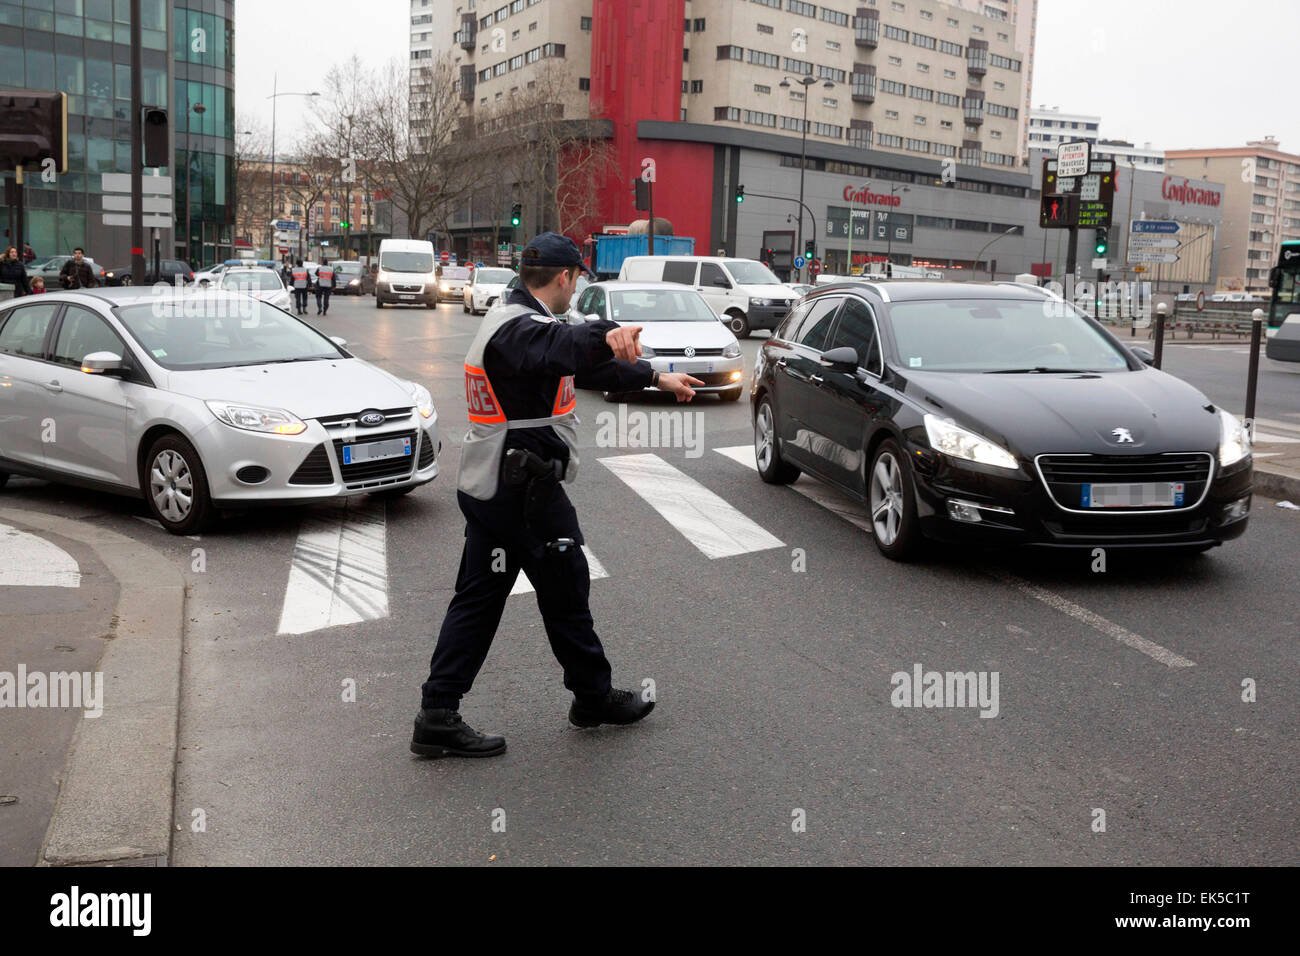 Paris, alternative traffic police control, odd plates of registry authorized only - Stock Image